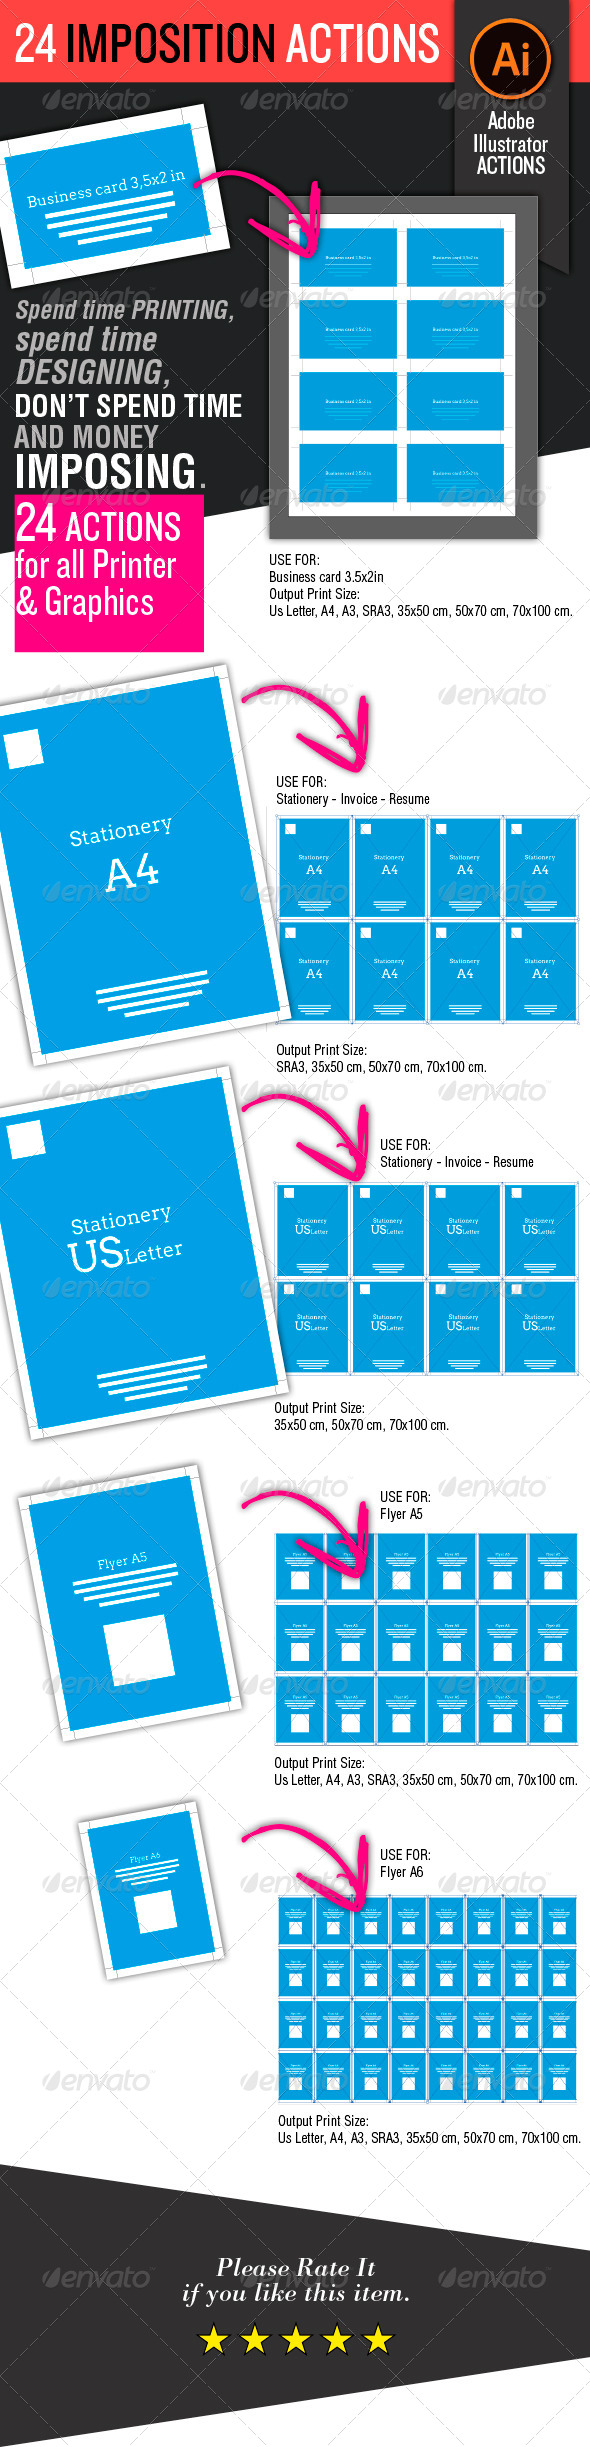 GraphicRiver 24 Imposition Actions 5897378